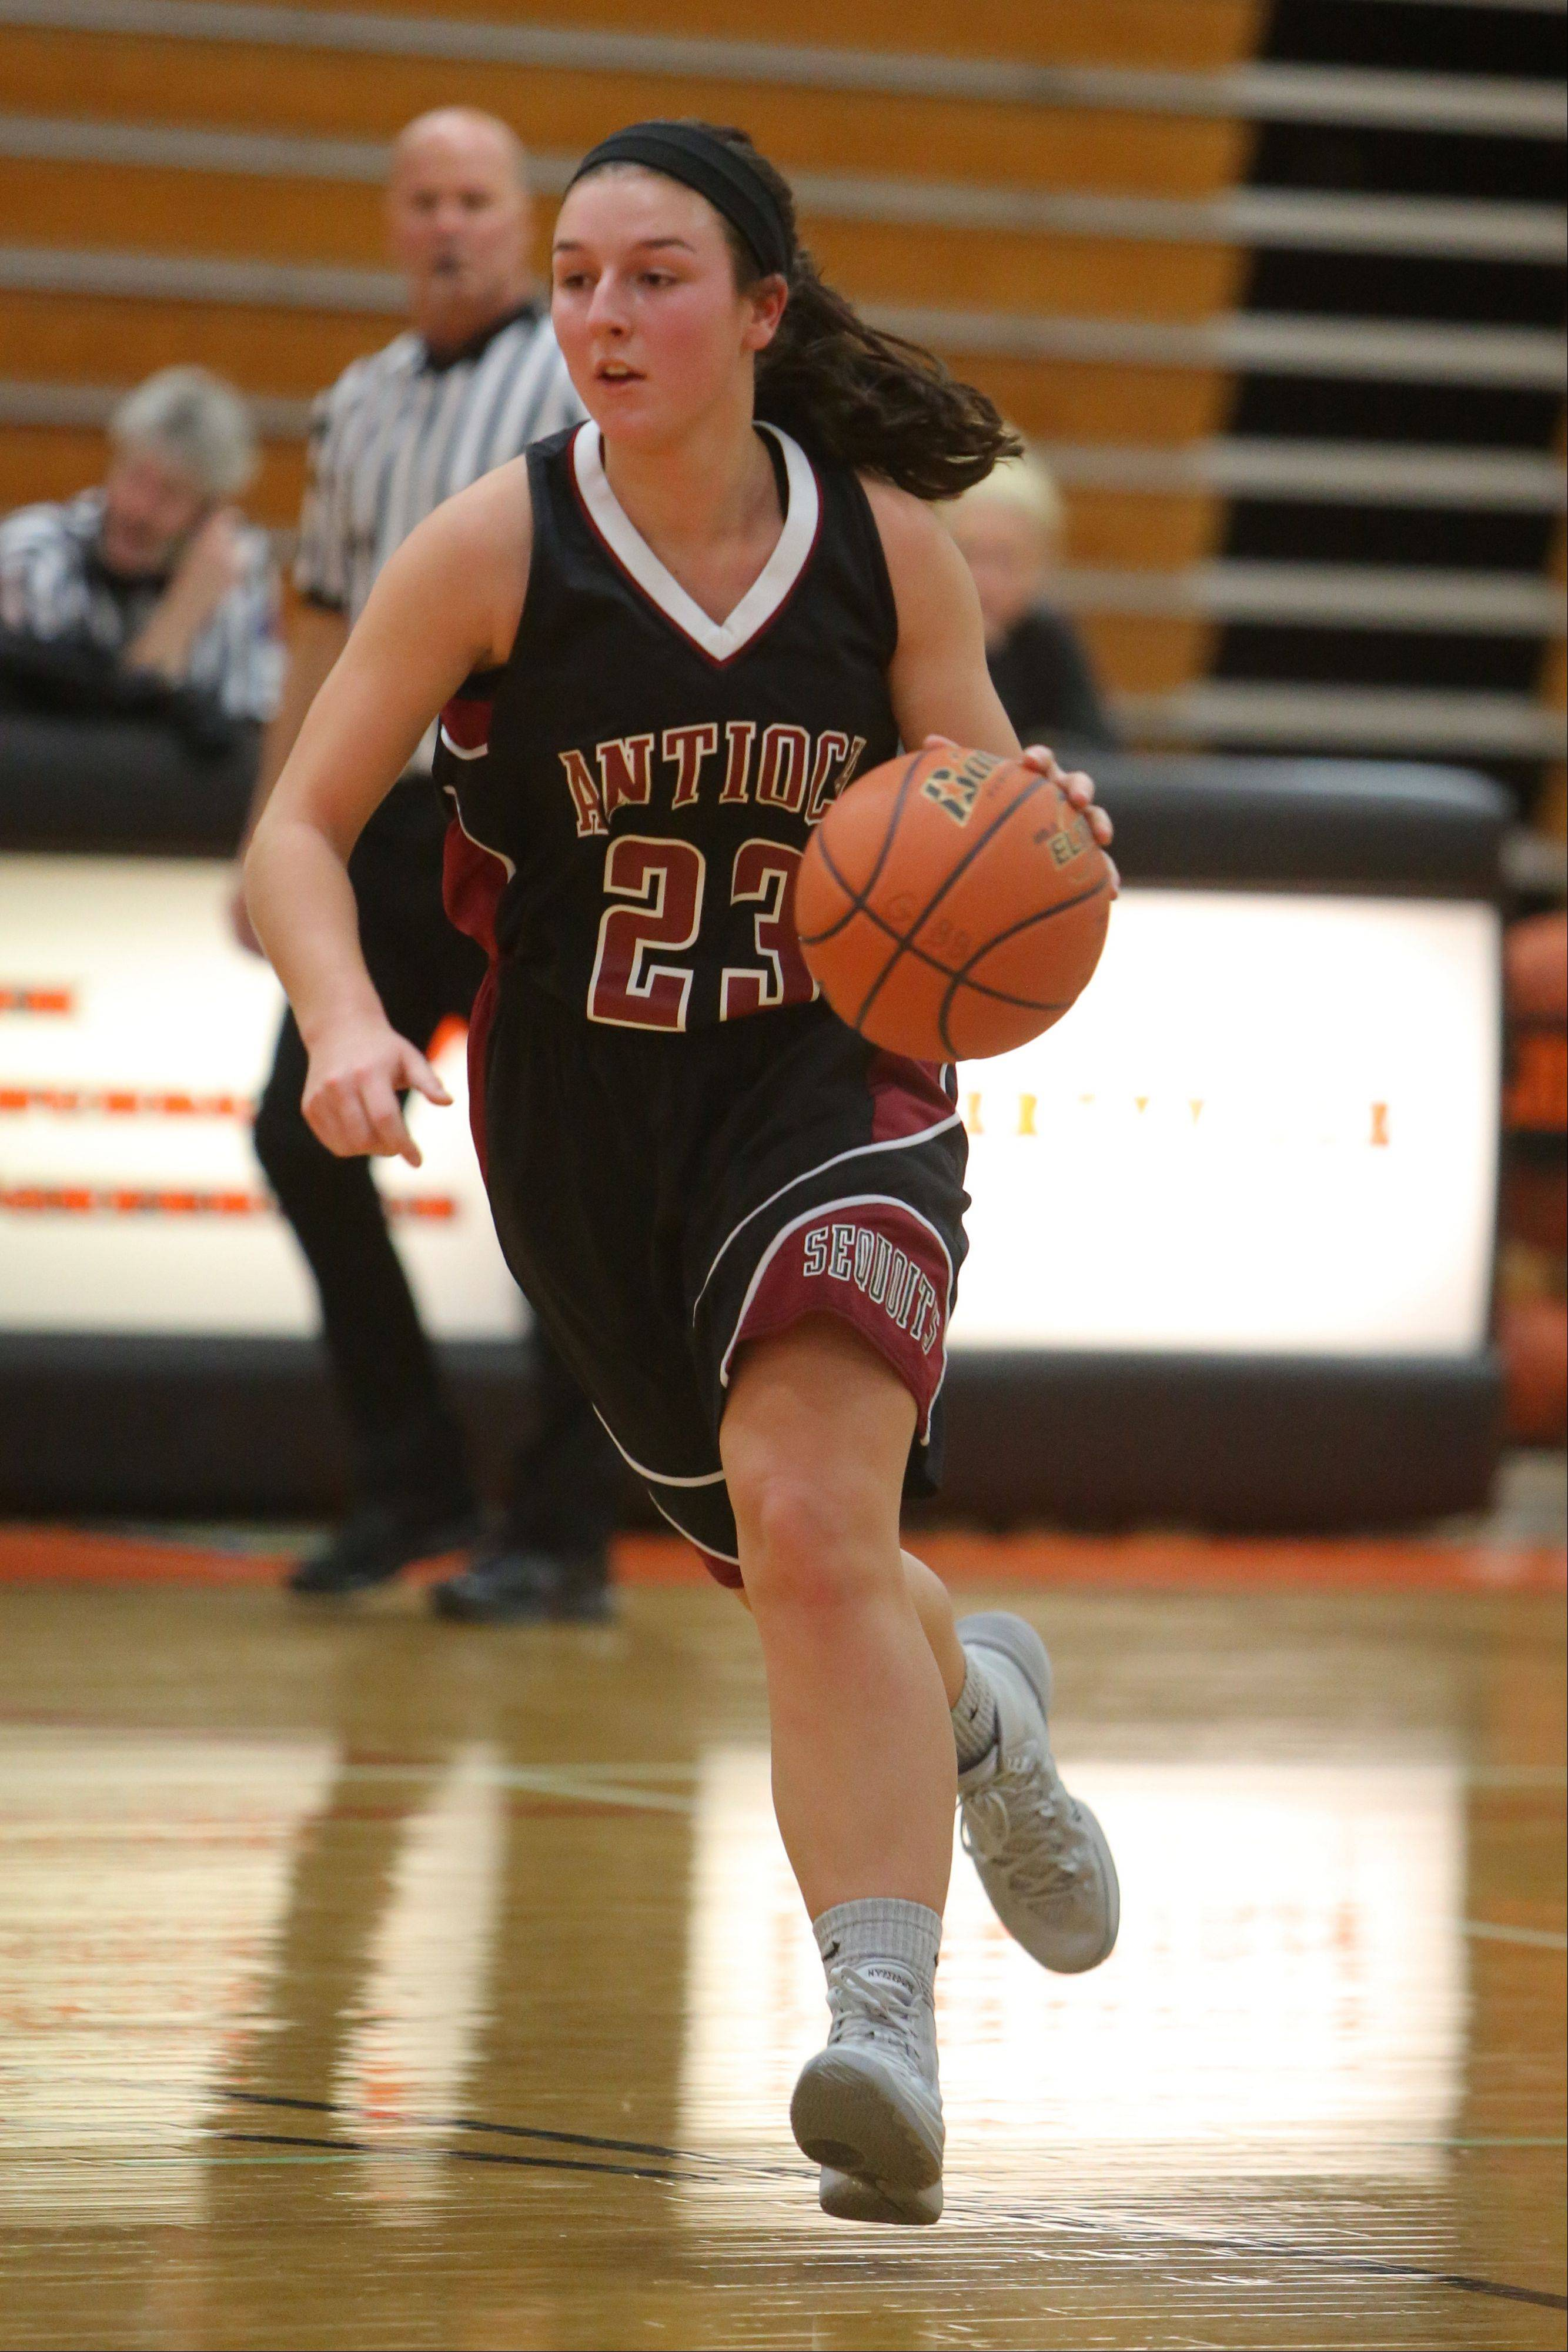 Images from the Antioch at Libertyville girls basketball game on Wednesday, January 8.